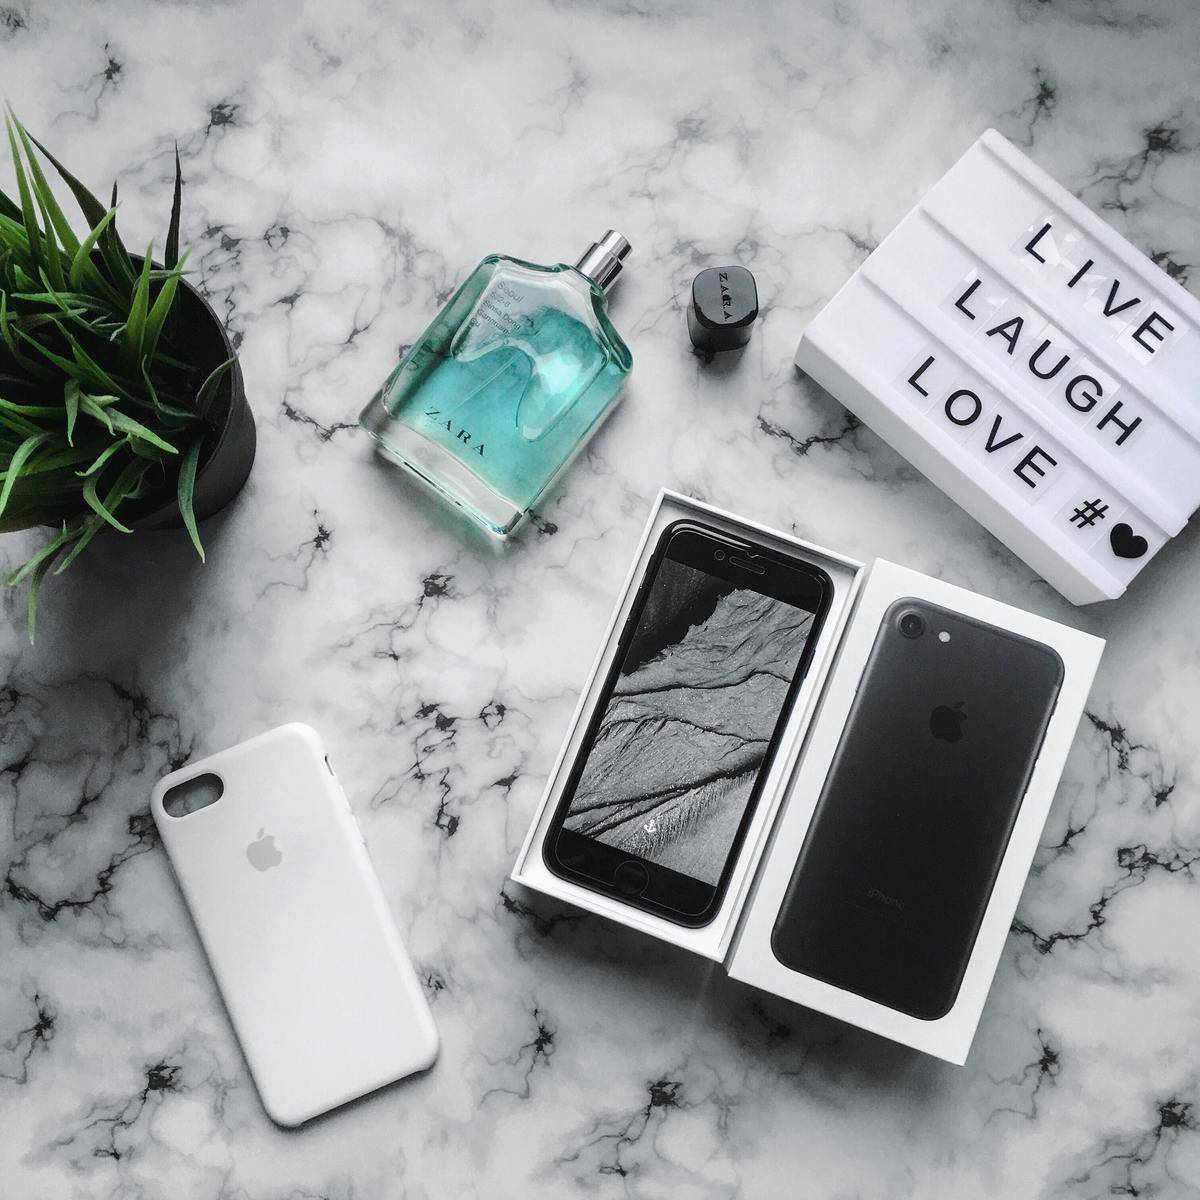 A cell phone, bottle of perfume, and light-up sign that says